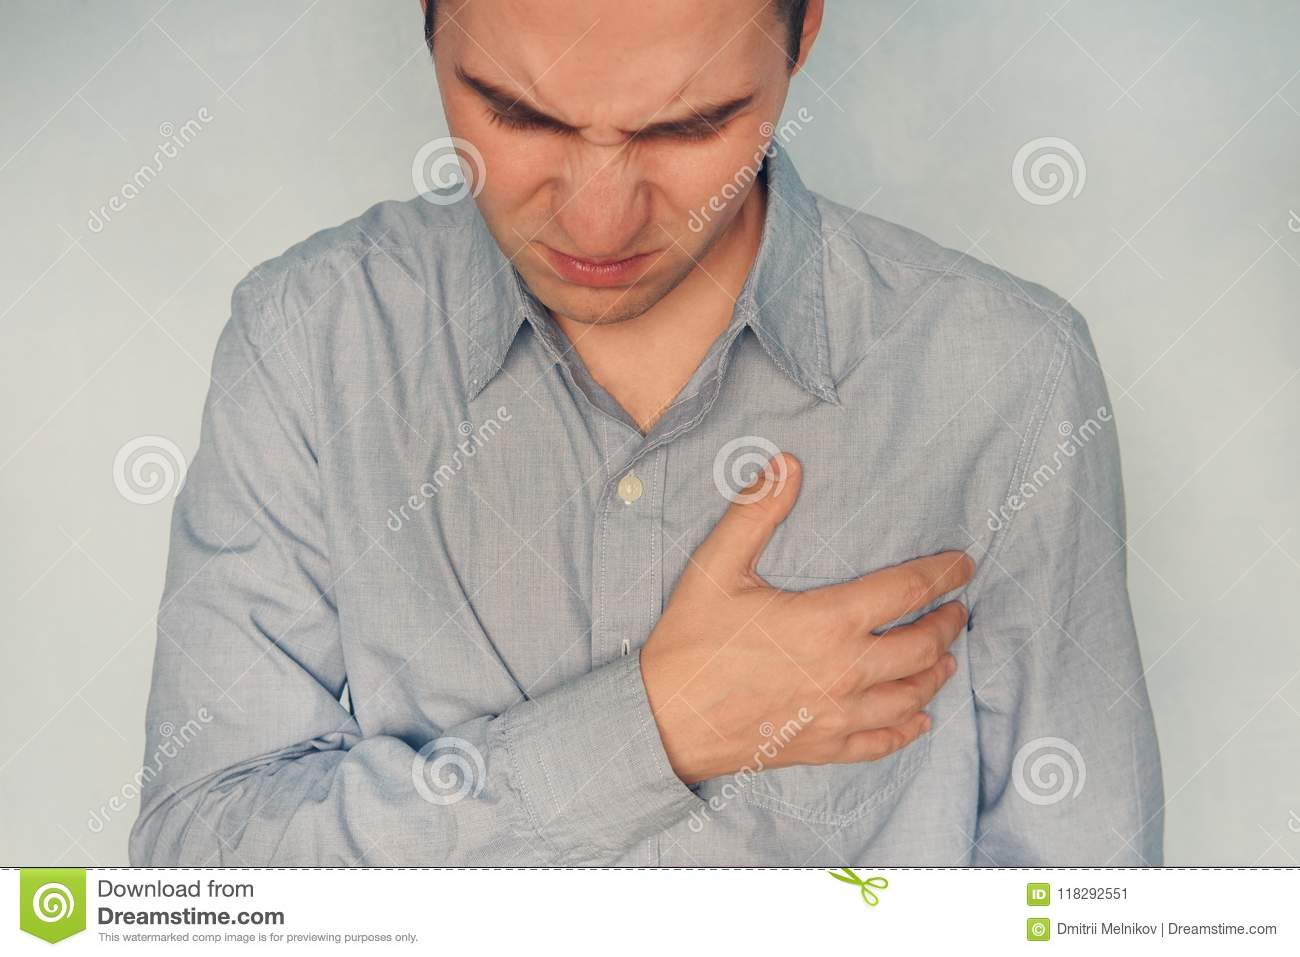 Man Having Heart Ache Holding Hand On Her Chest Heart Attack